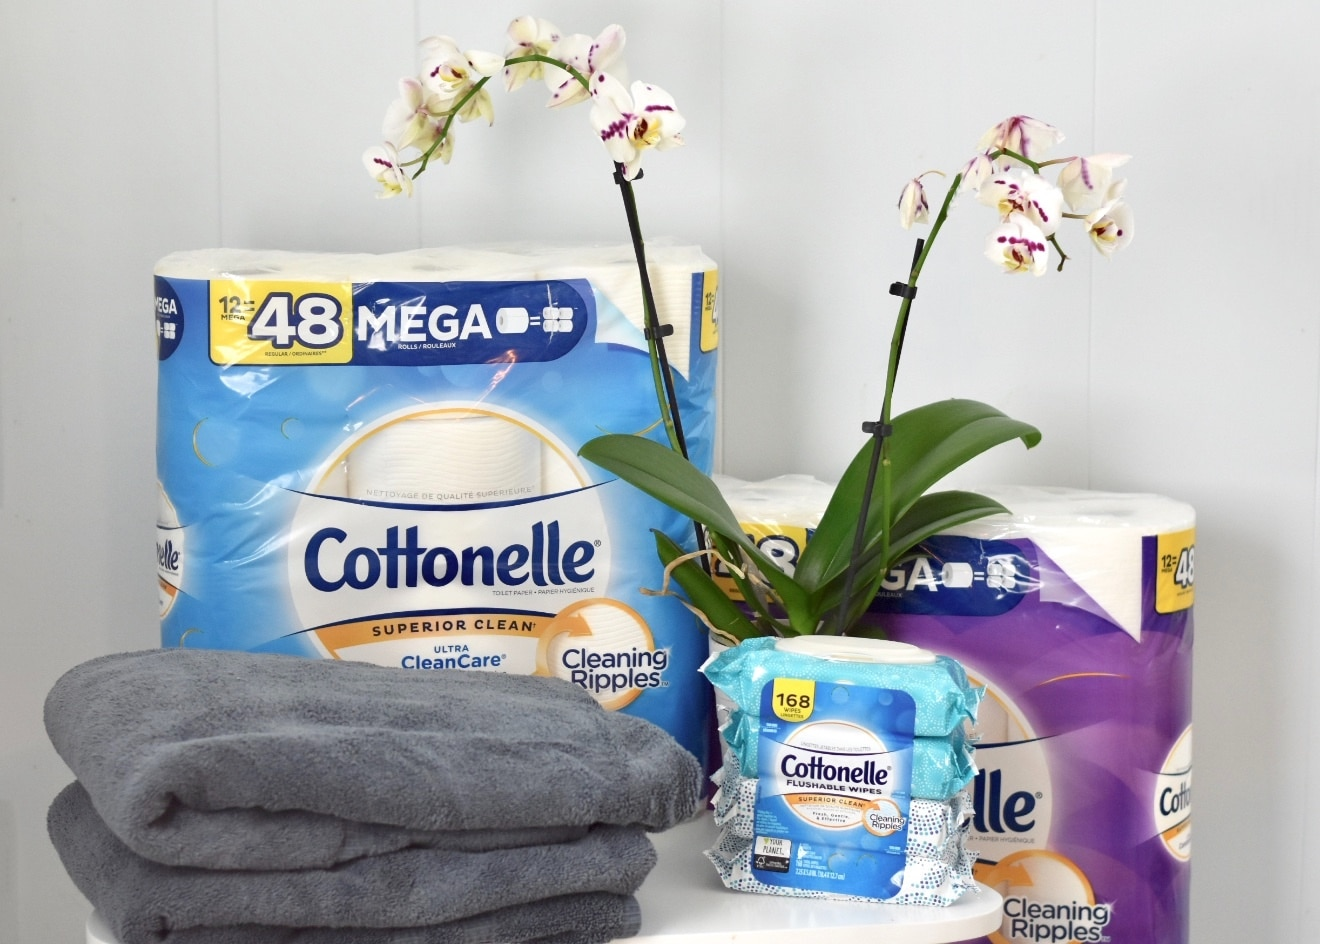 cottonelle flushable wipes and toilet paper